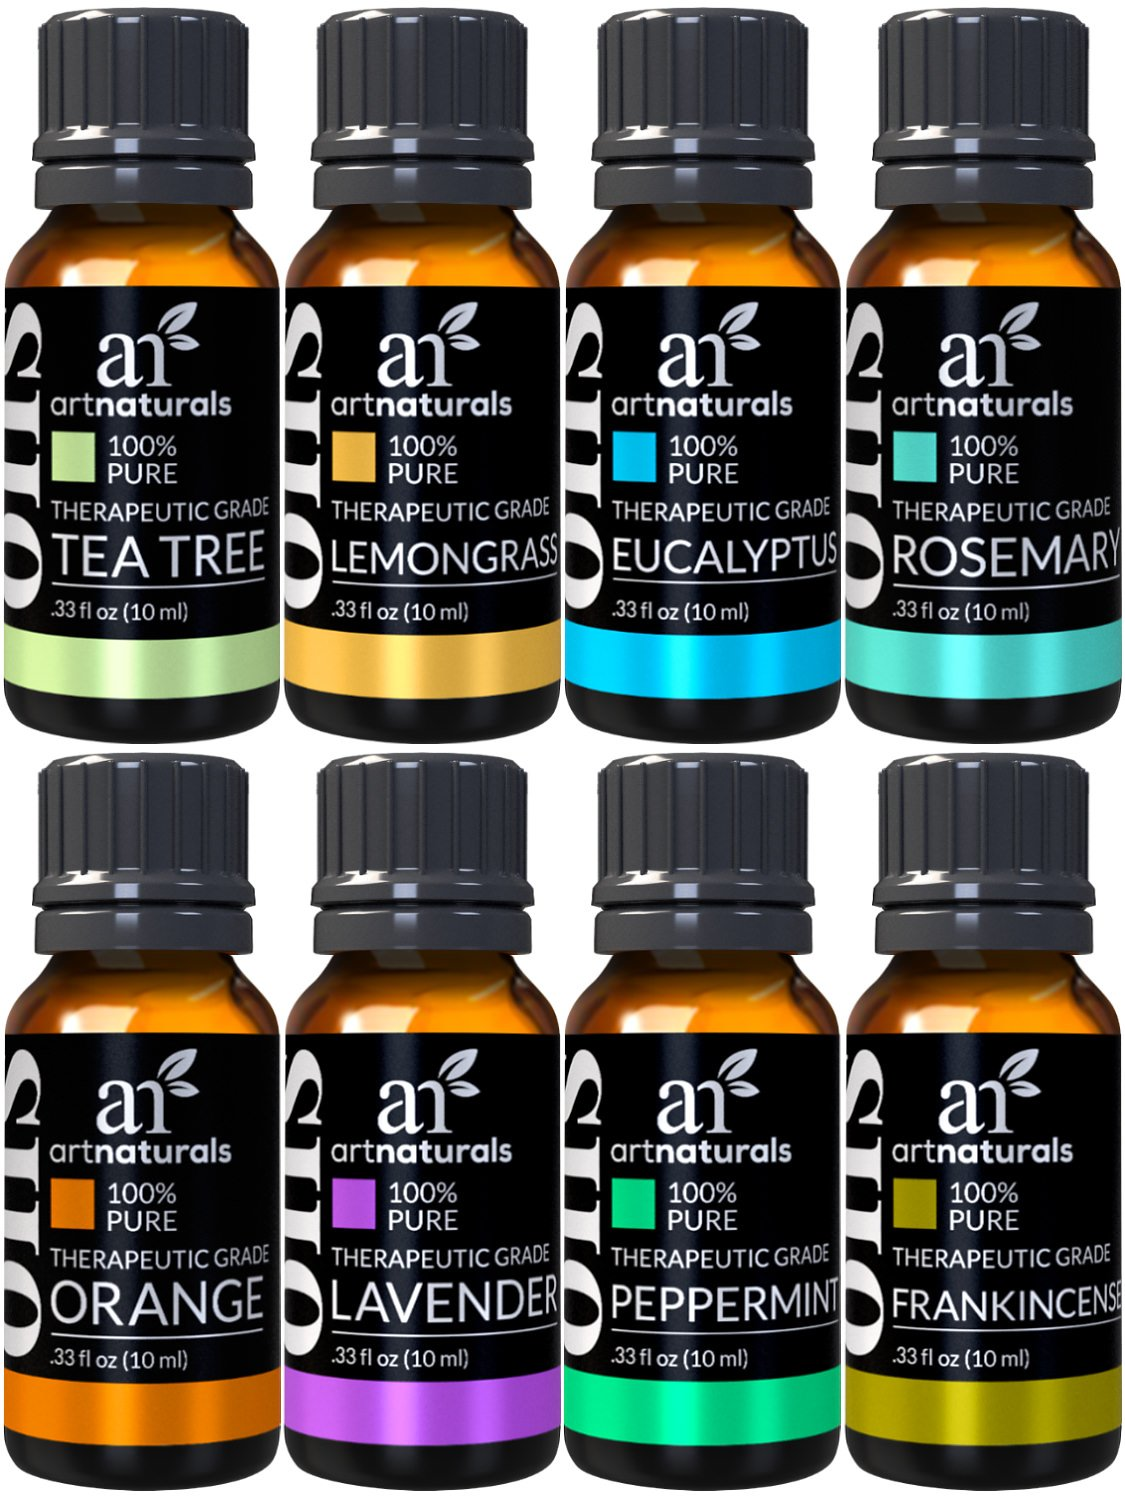 ArtNaturals TherapeuticGrade Aromatherapy Essential Oil Gift Set8 x 10ml100% Pure of the OilsPeppermint, Tea Tree, Lavender, Eucalyptus ANVA-0108-VE